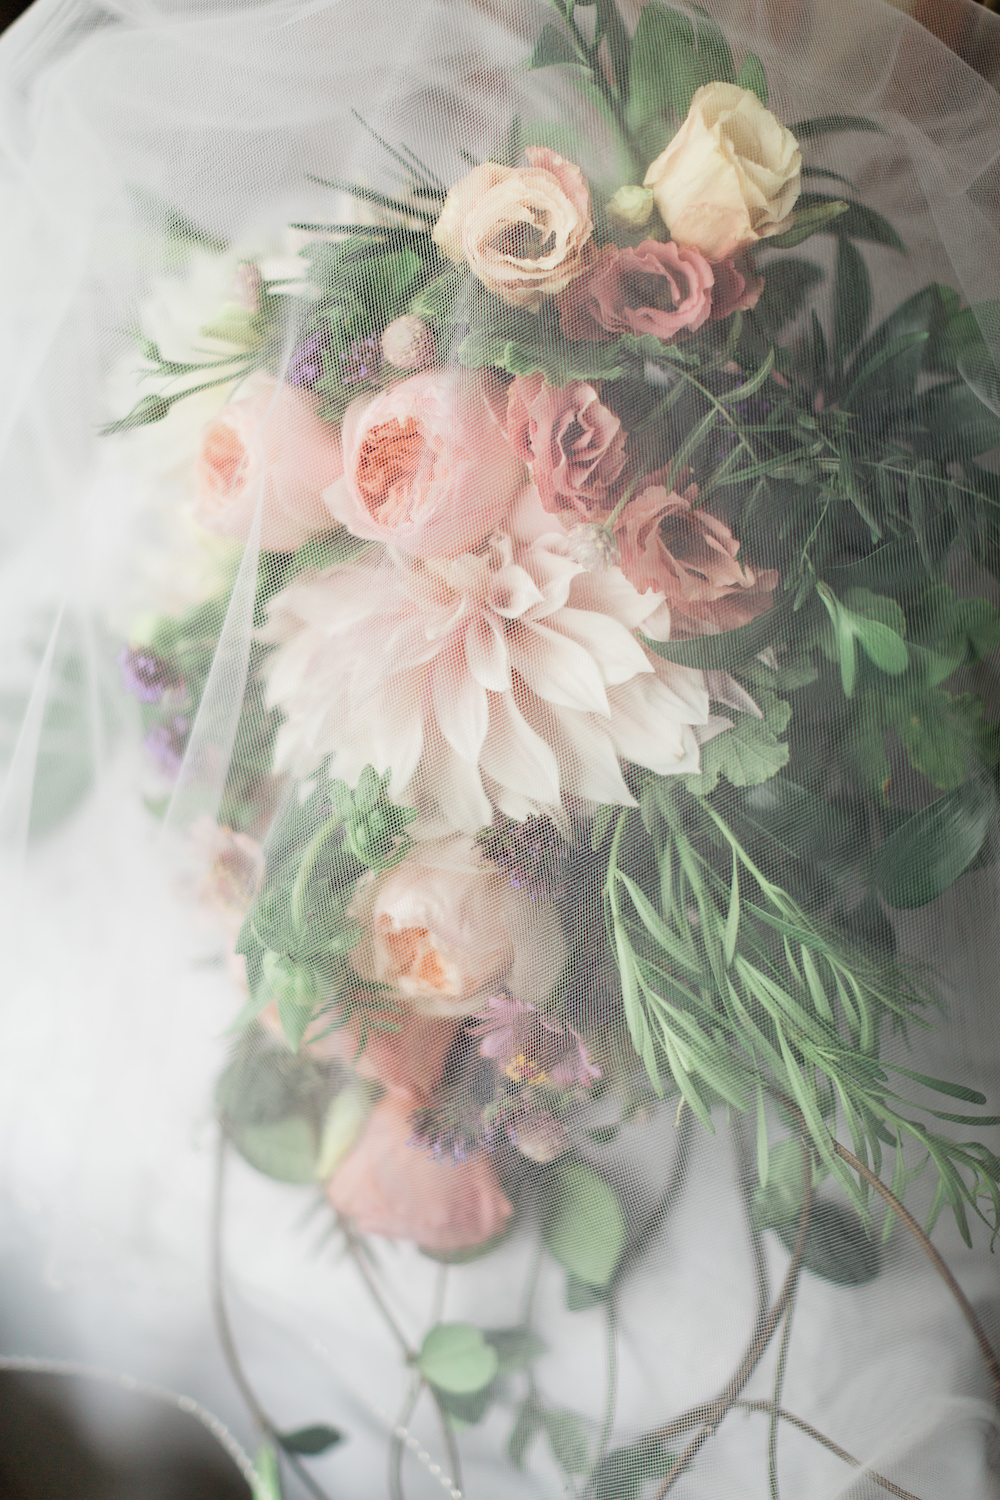 How to Keep your Bridal Bouquet Fresh - Wedding Flower Care